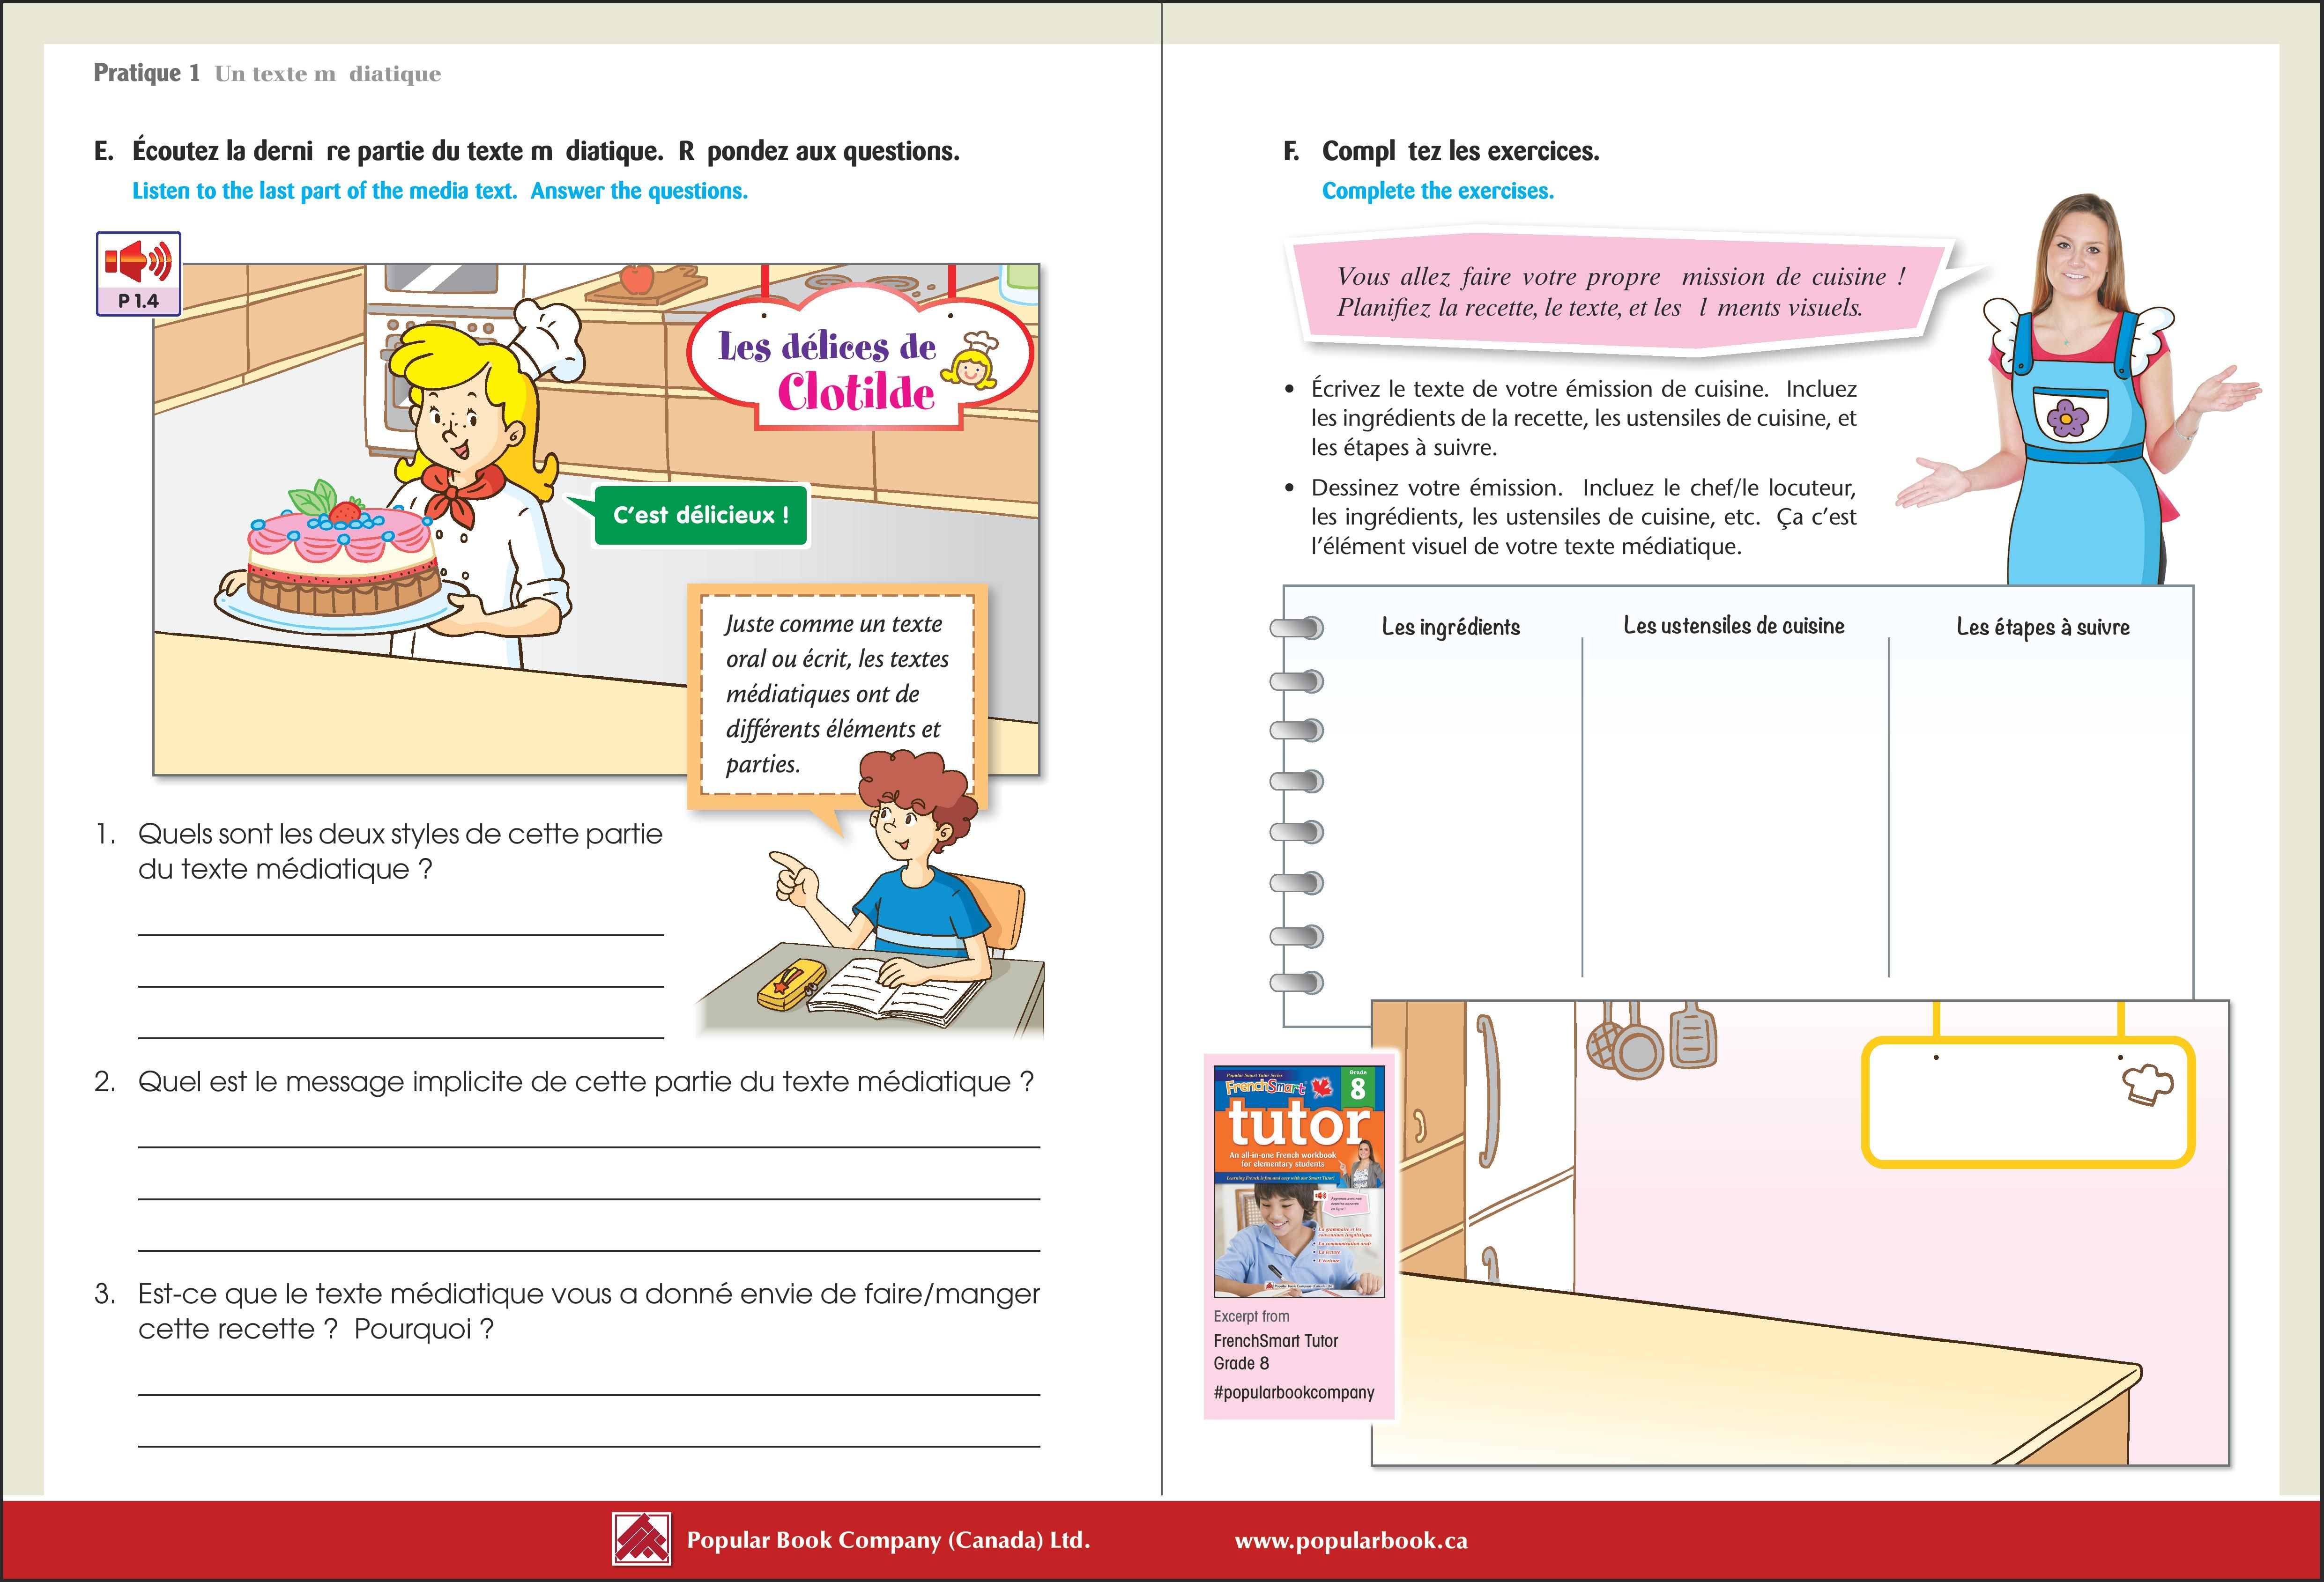 Download The Free Sample Pages From Frenchsmart Tutor